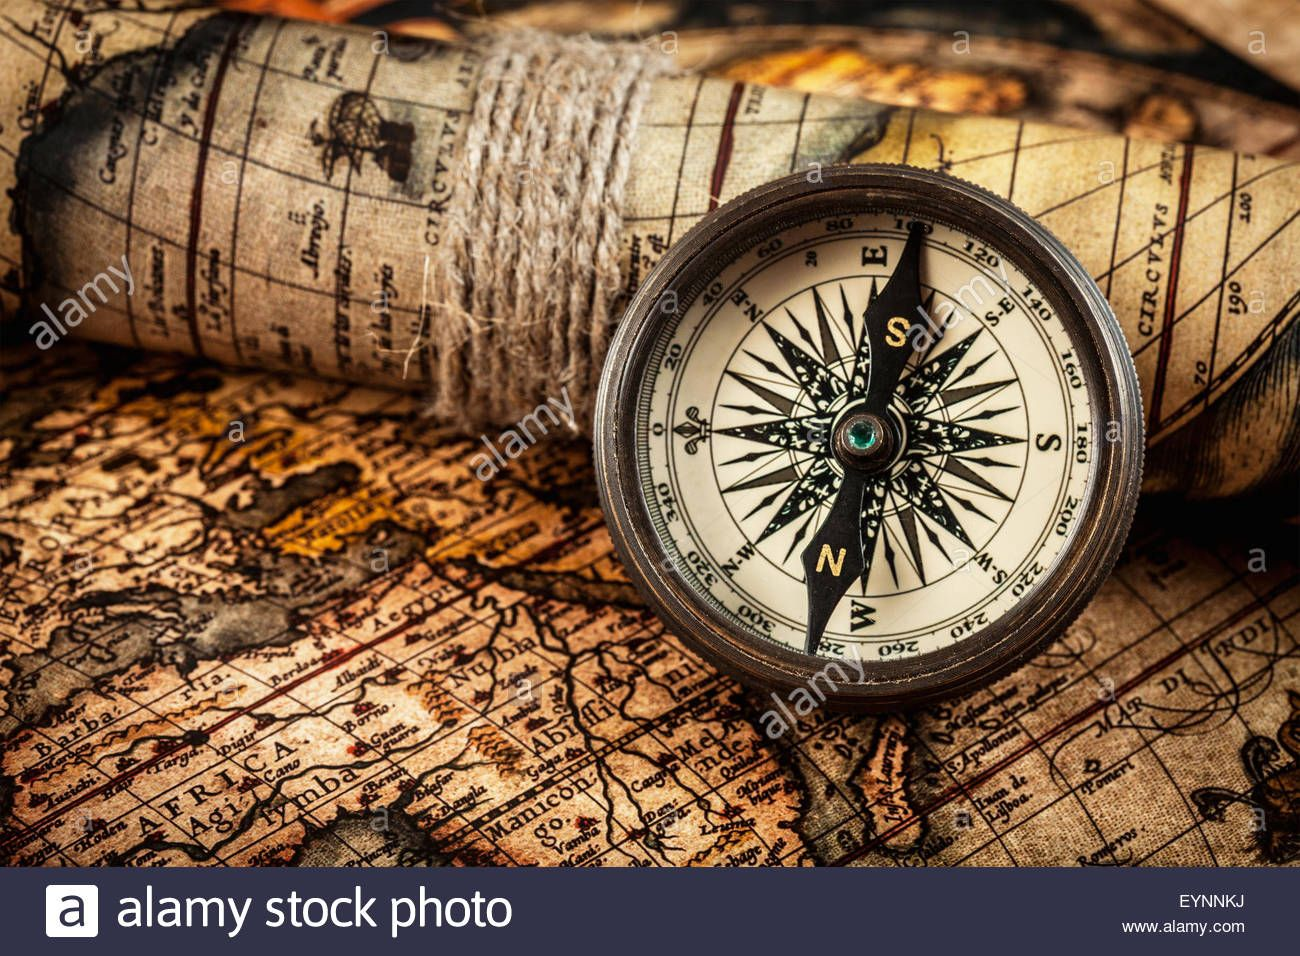 Pin By Molly Jonas On Marino Y Mitologia Vintage Compass Ancient Maps Vintage Compass Tattoo